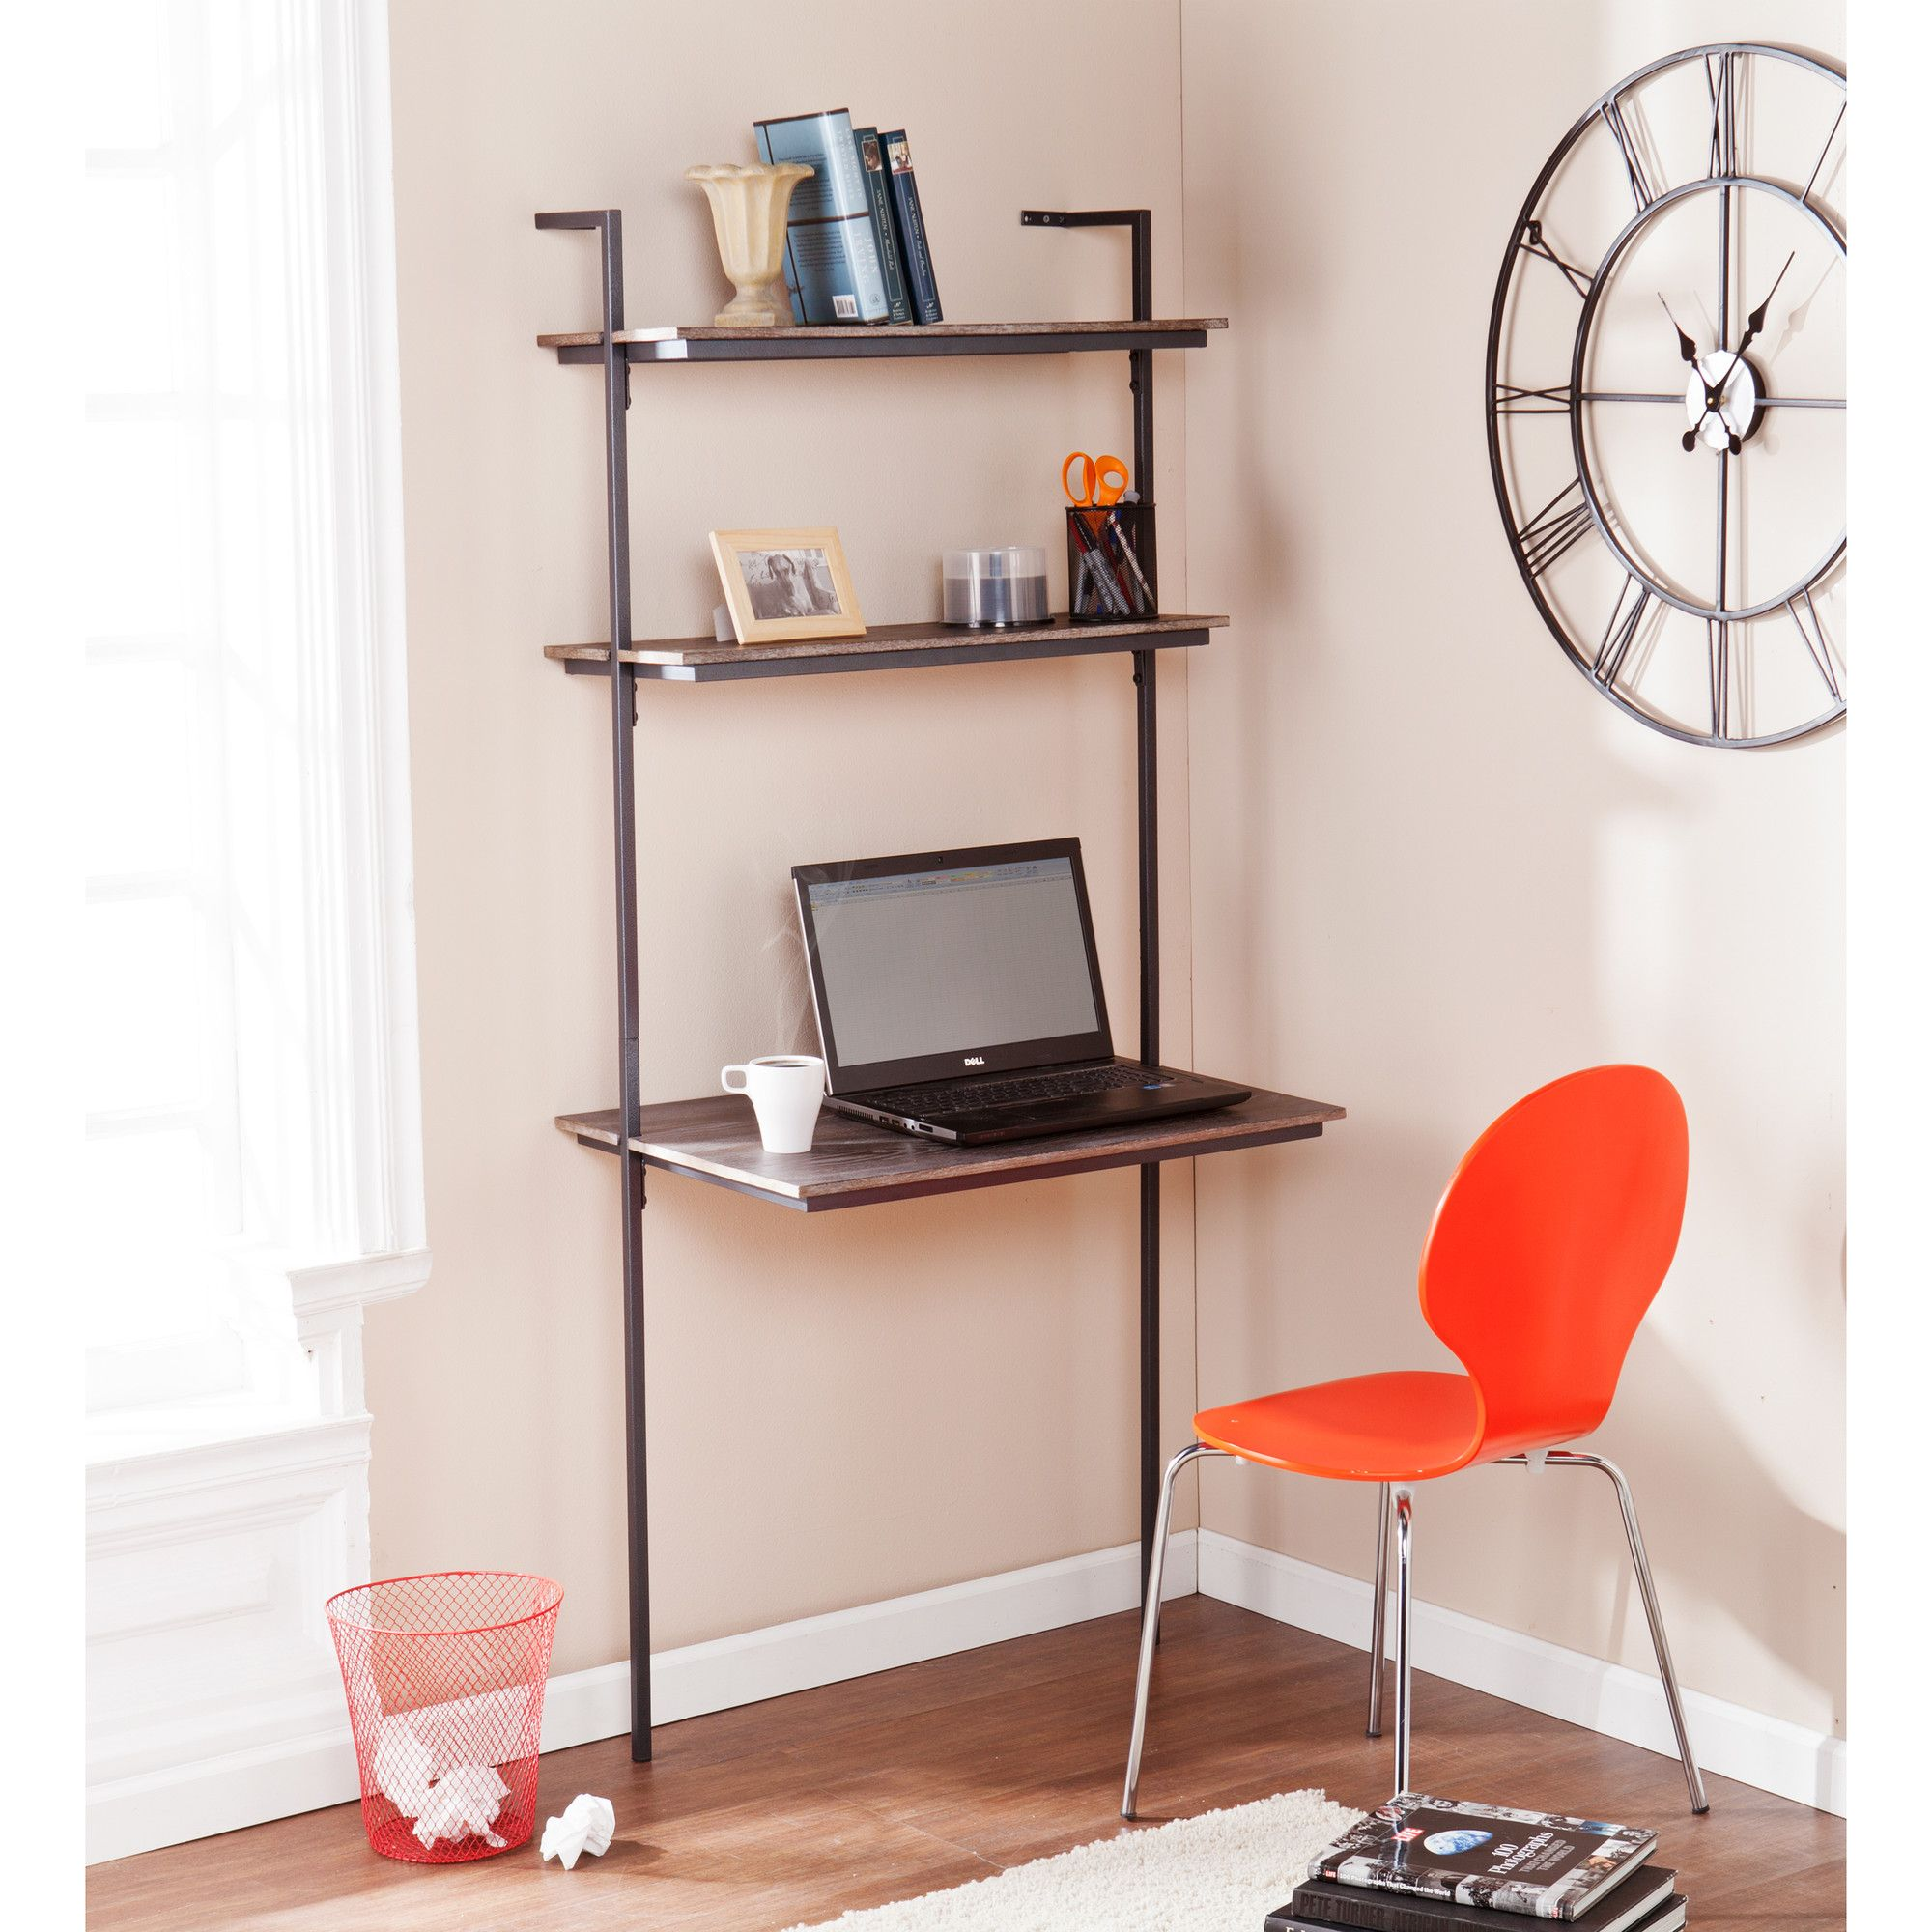 Bundine ladder desk desks shelves and apartments